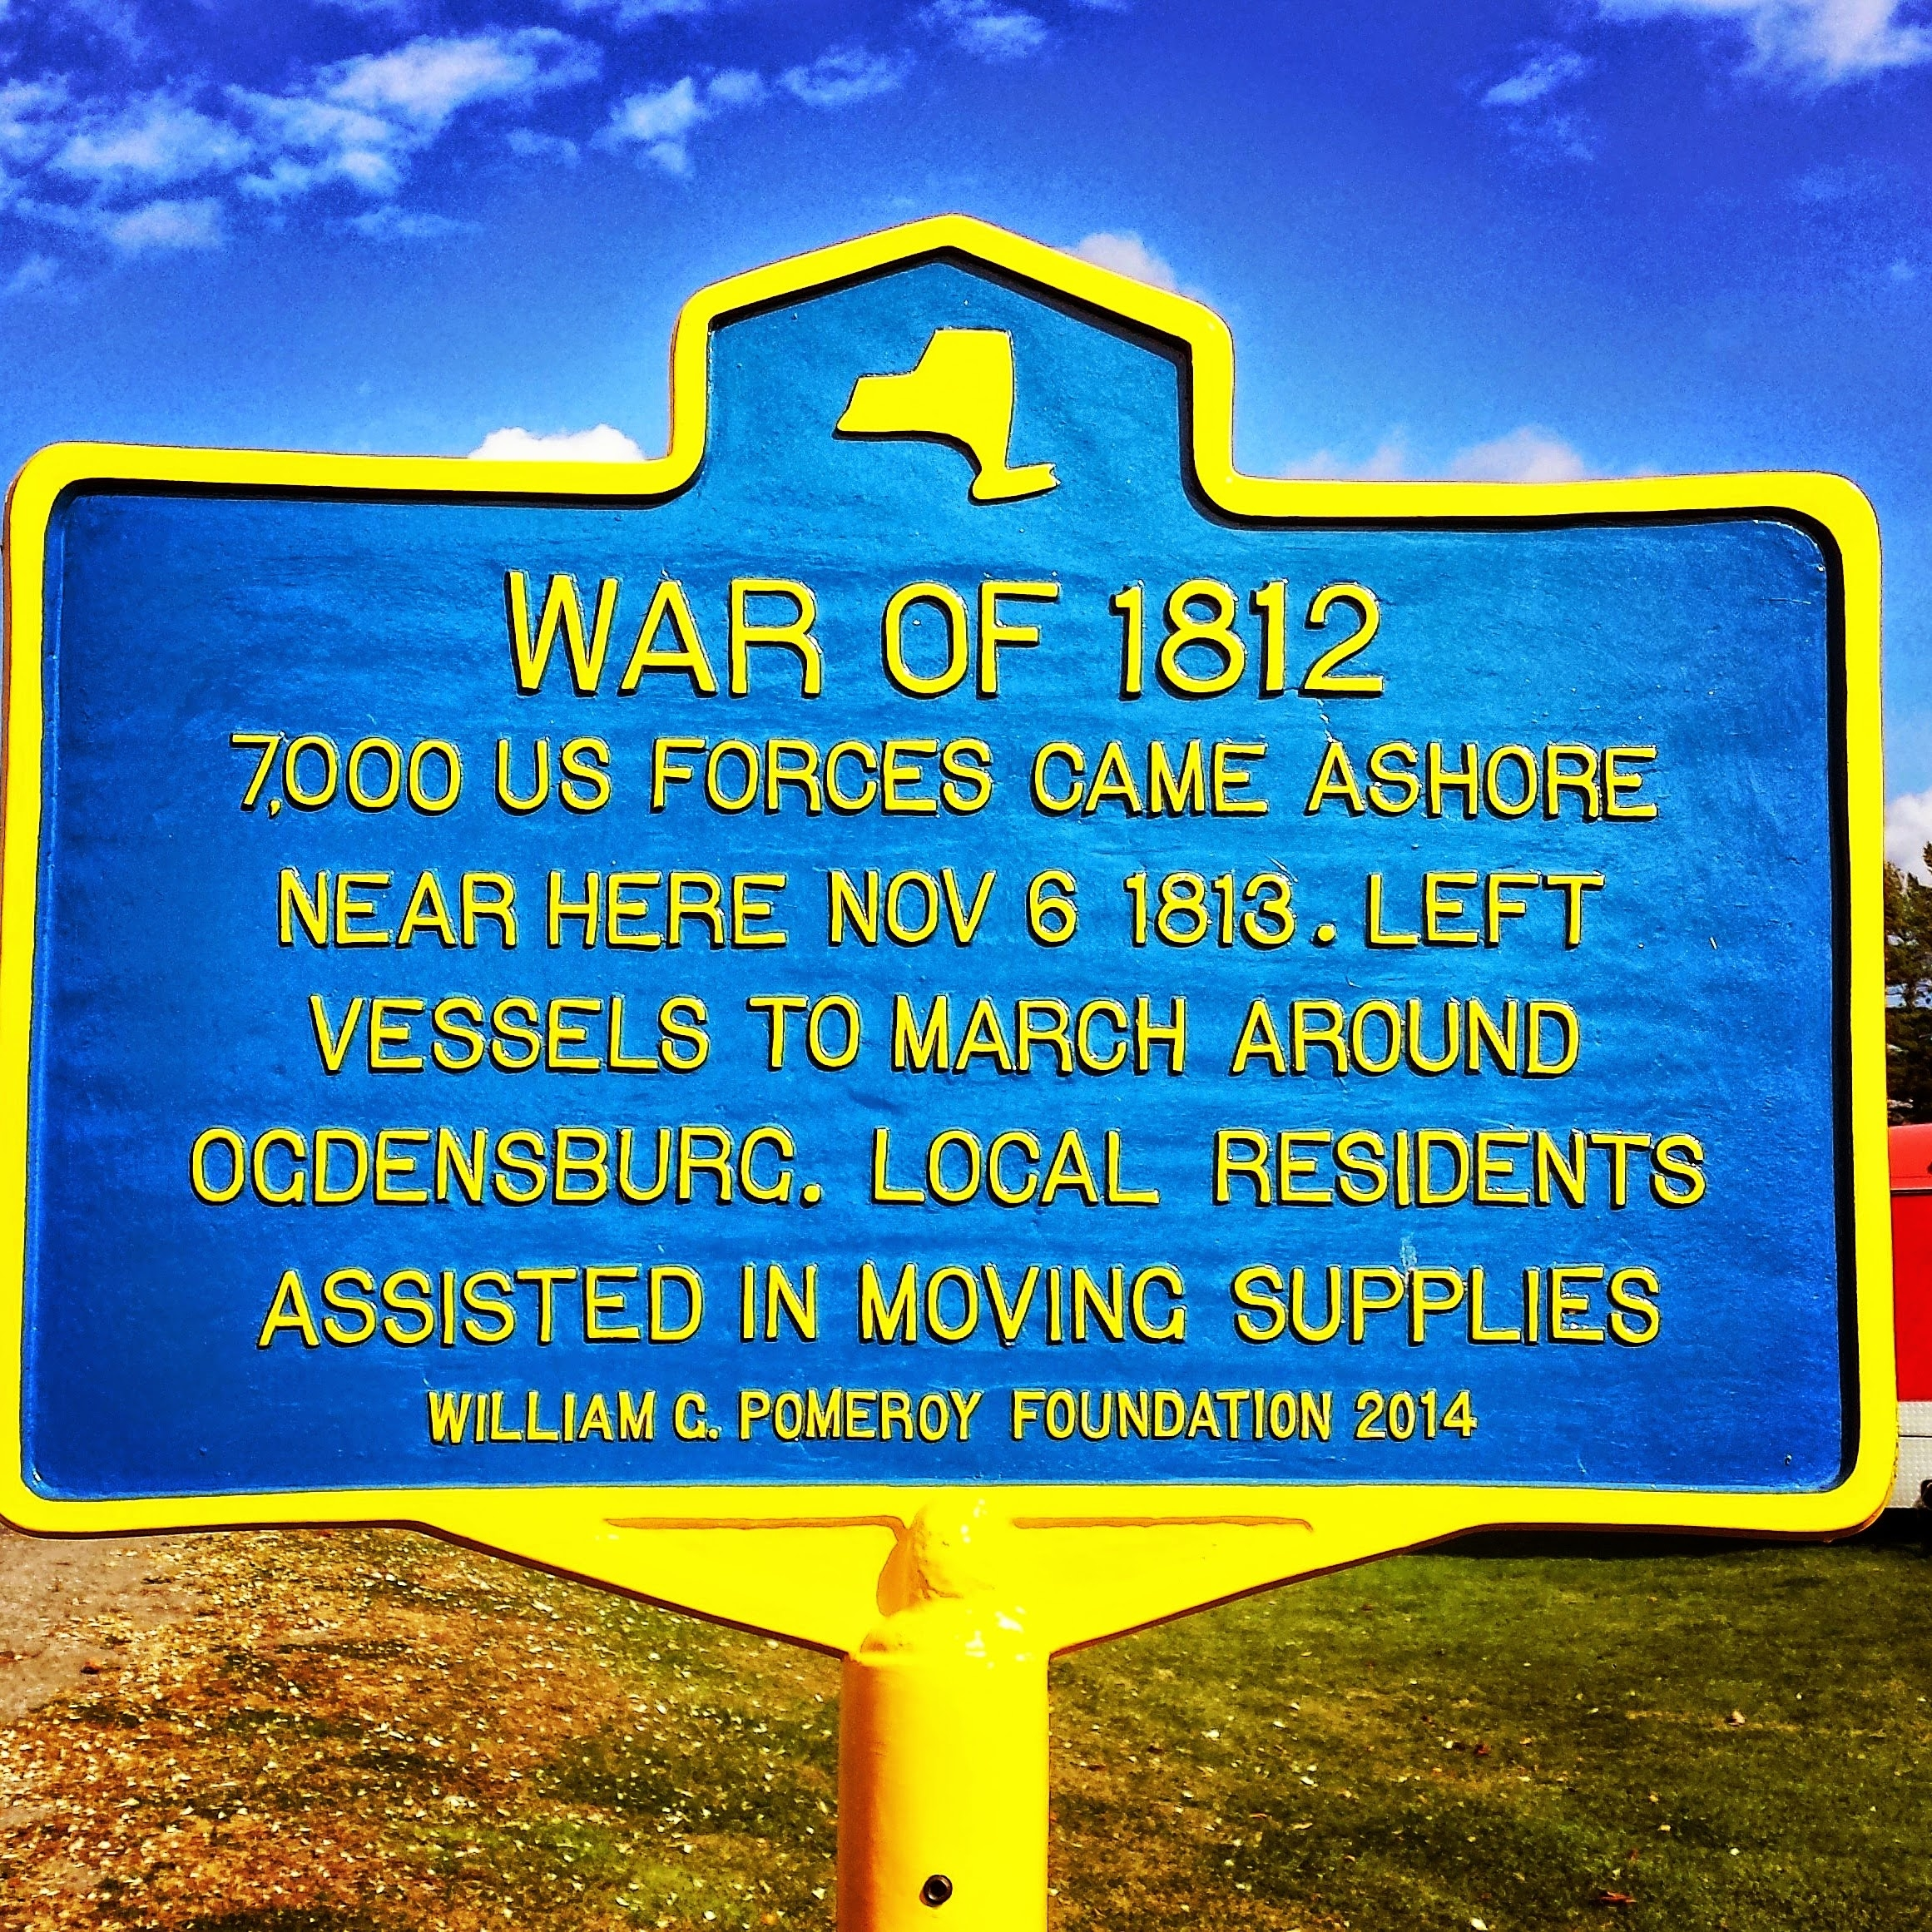 War of 1812 Marker